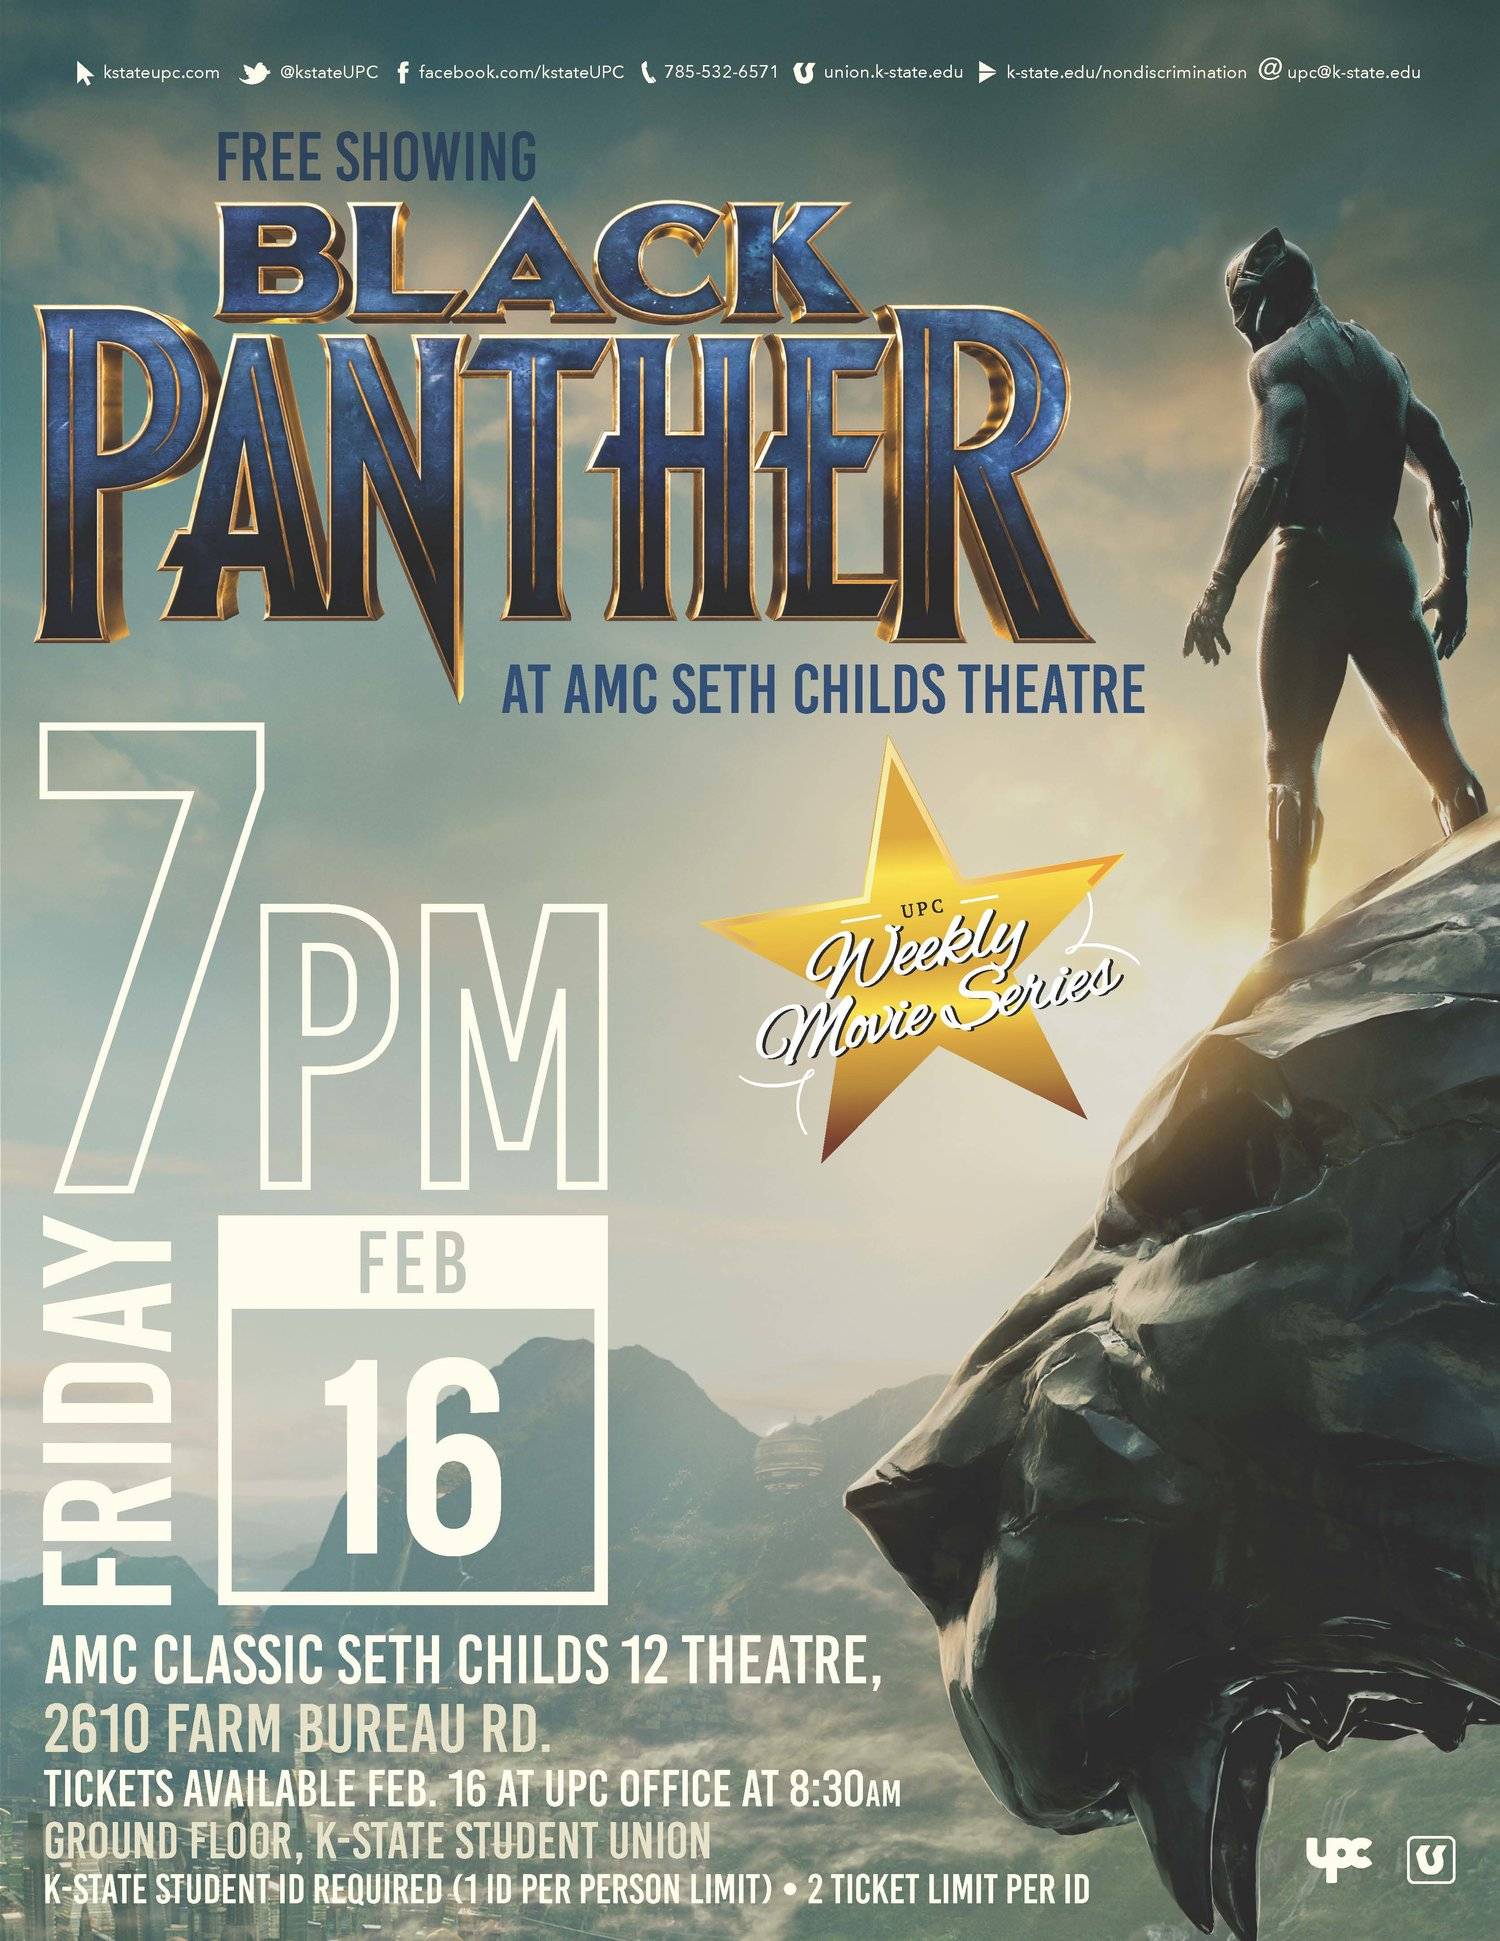 Free Tickets Available For Students To >> Sold Out Free Screening Of Black Panther For K State Students K